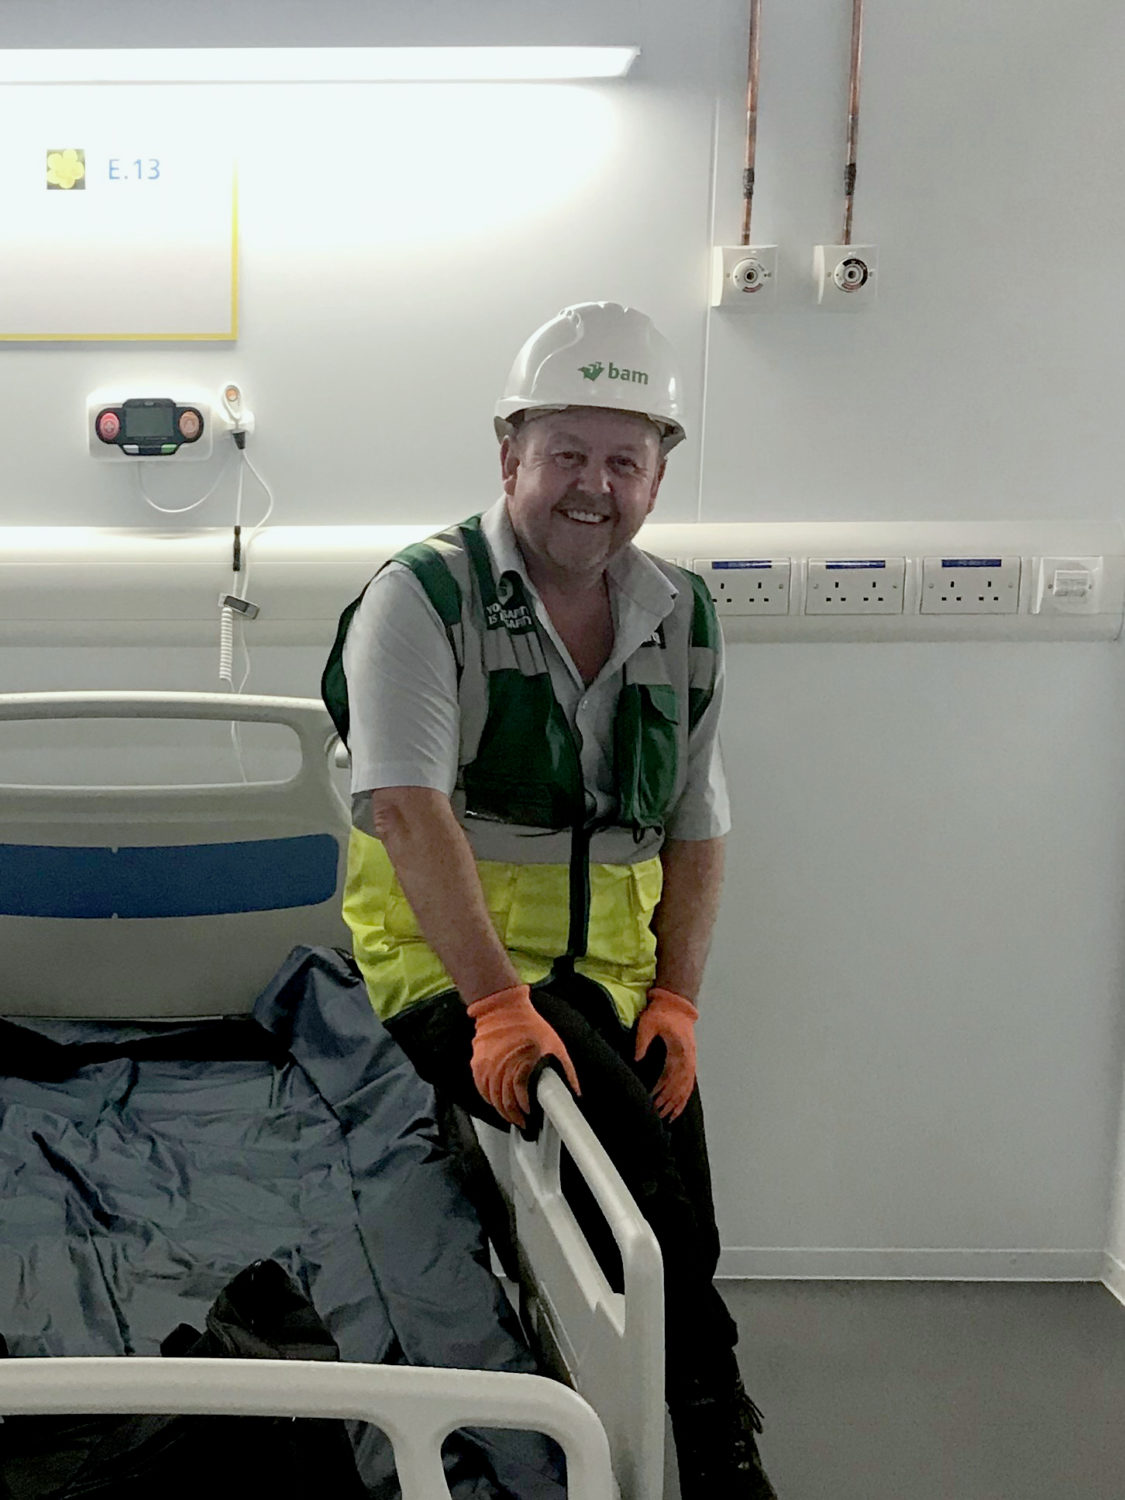 Andy Witnall wearing construction PPE in a hospital